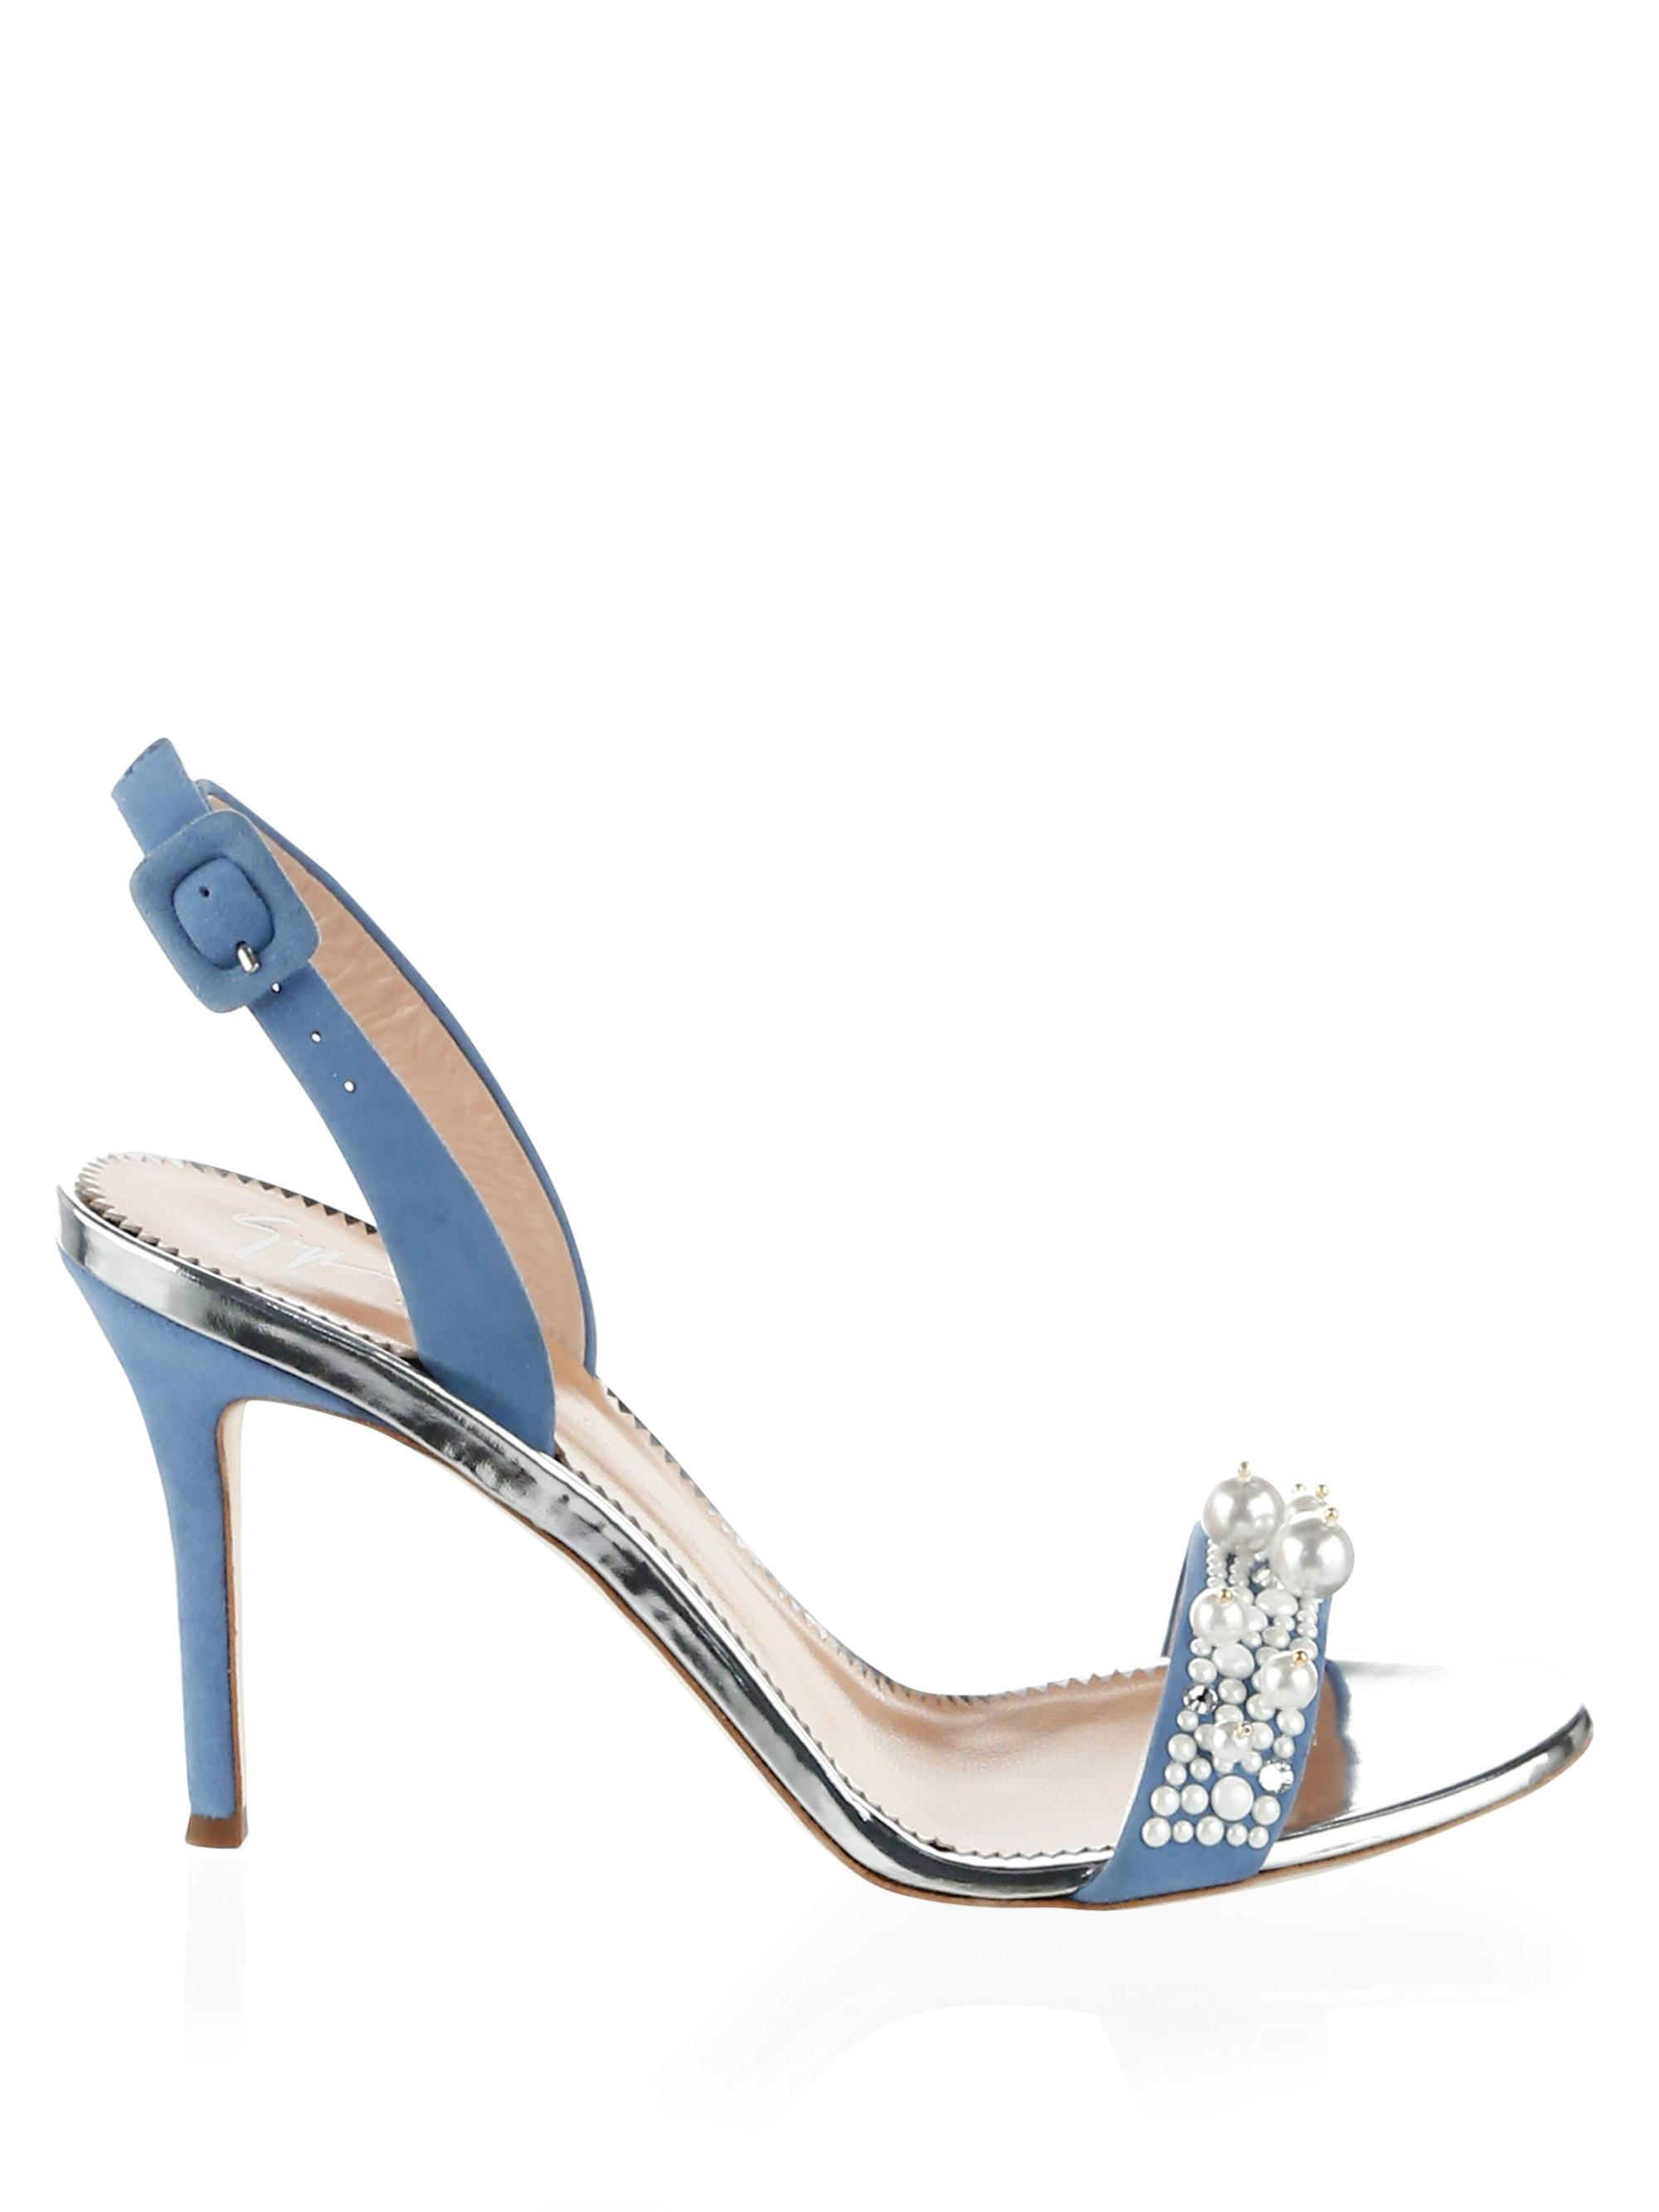 23416a6a3ce545 Giuseppe Zanotti Faux Pearl Embellished Leather Sandals in Blue - Lyst